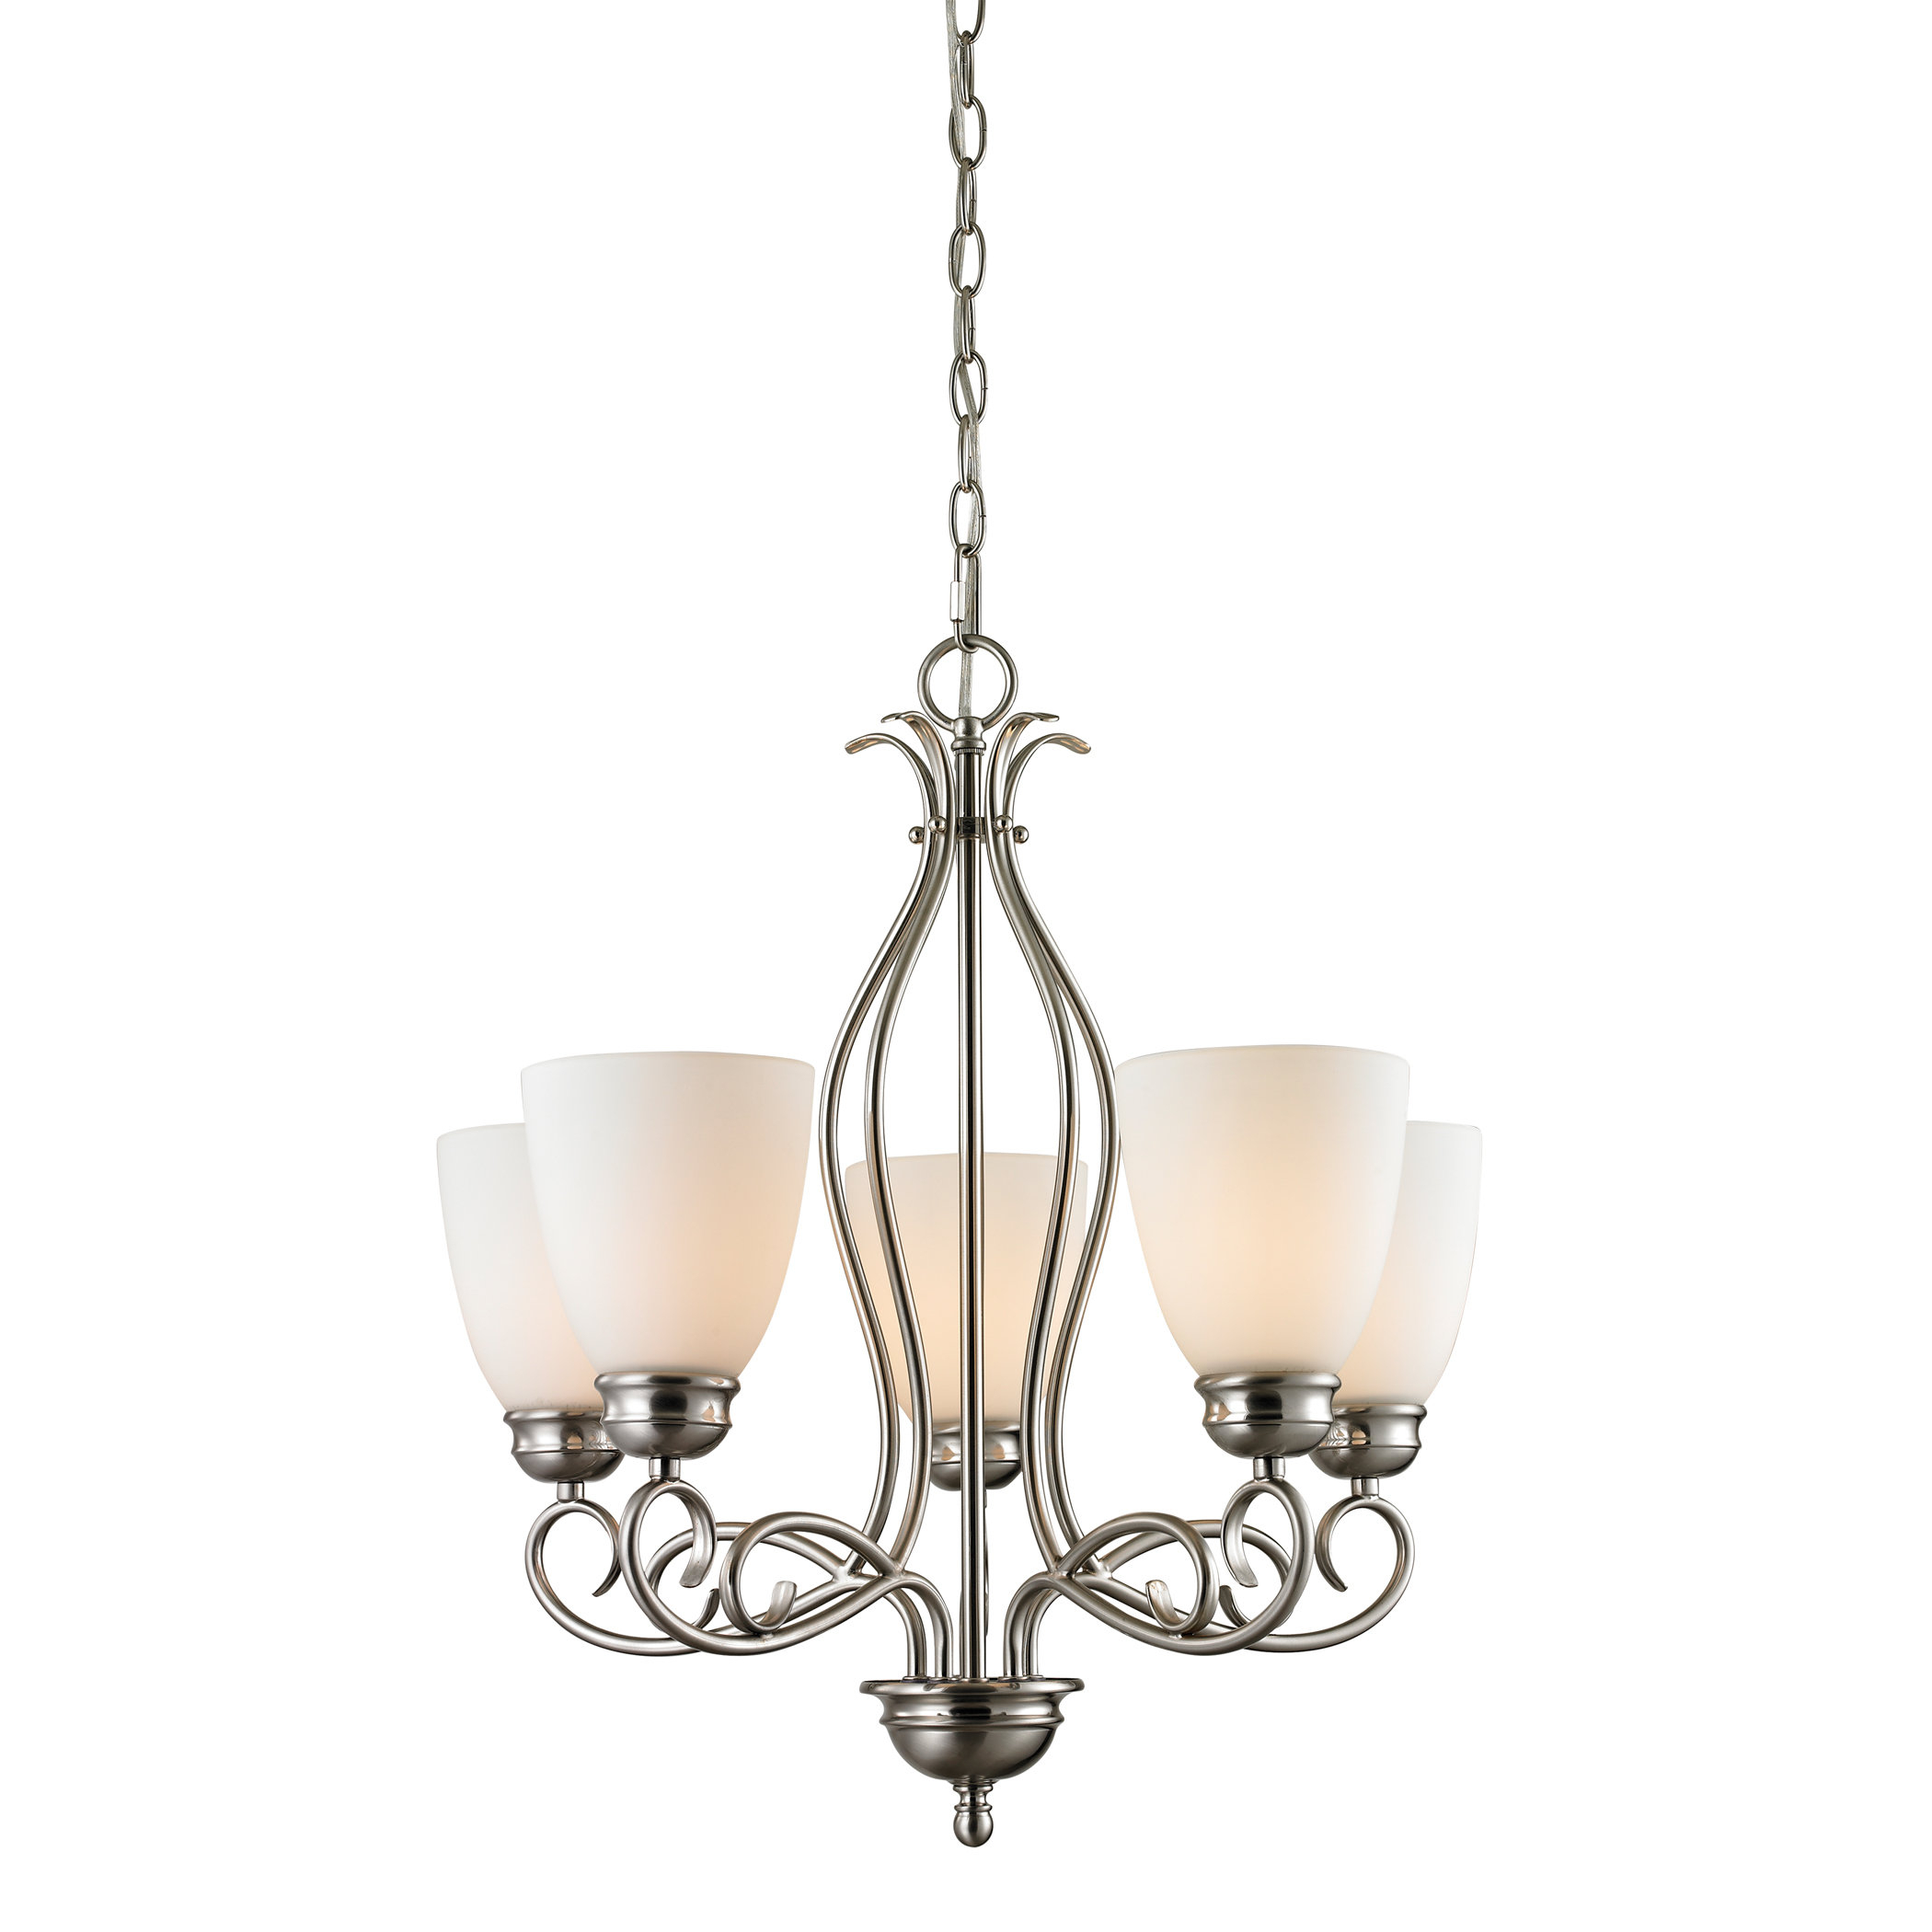 Pearlie 5 Light Shaded Chandelier Pertaining To Gaines 5 Light Shaded Chandeliers (View 14 of 30)